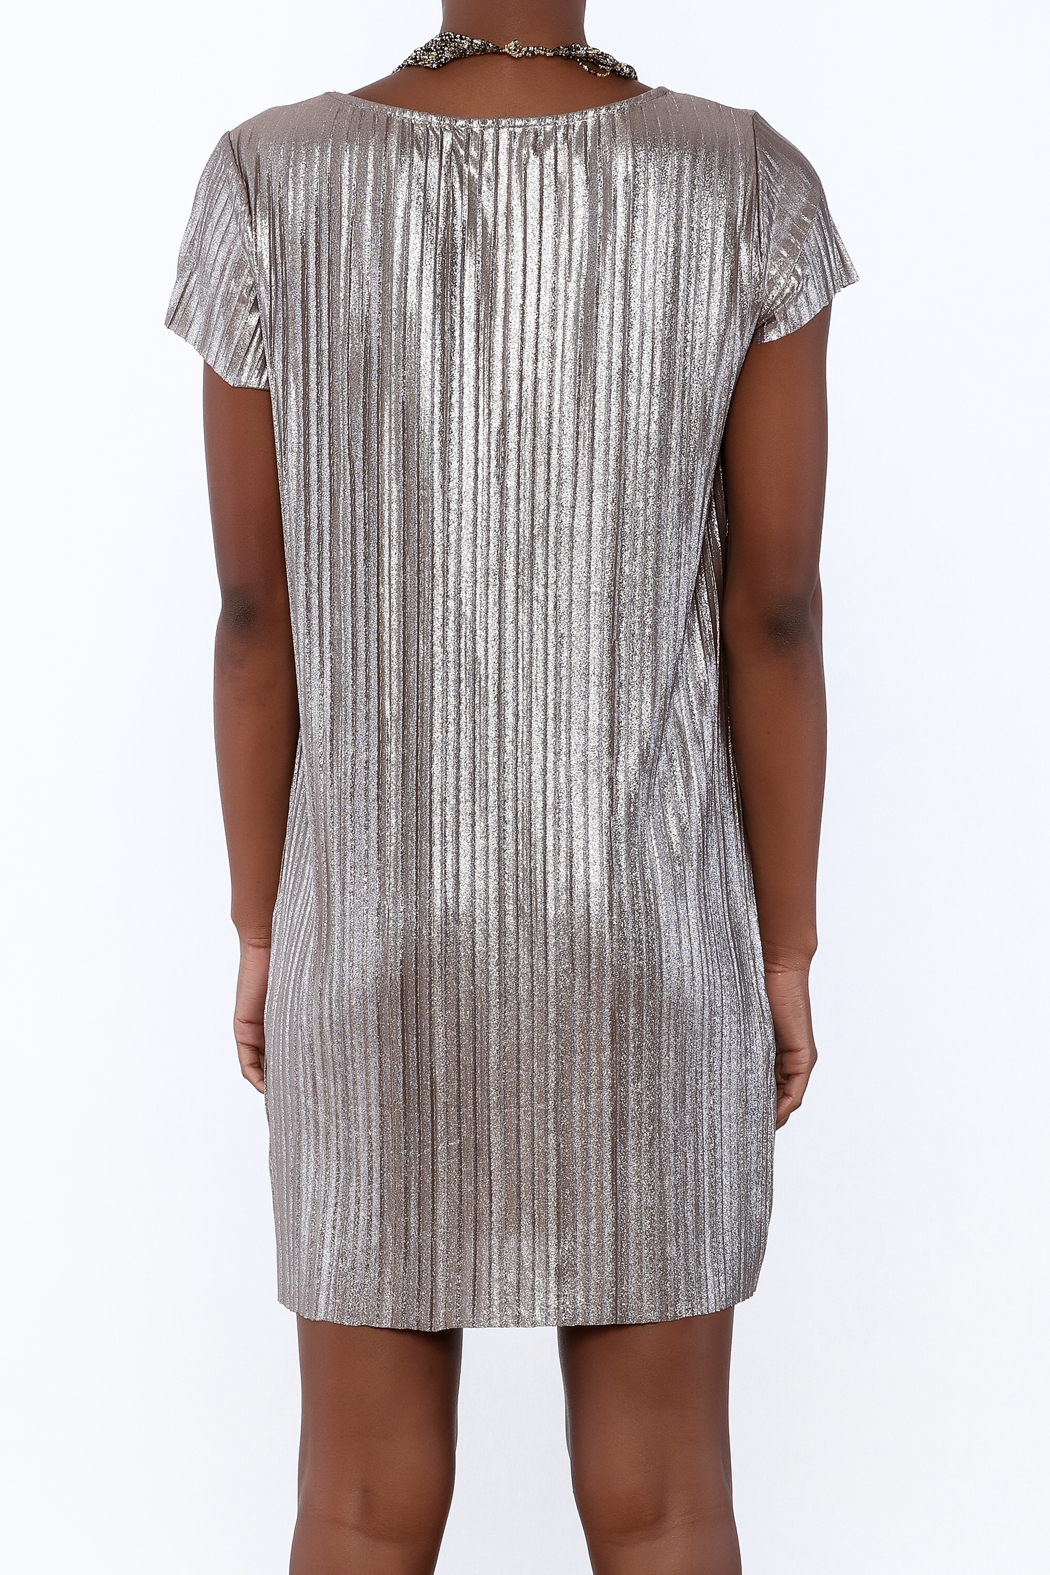 She + Sky Pleated Metallic Dress - Back Cropped Image